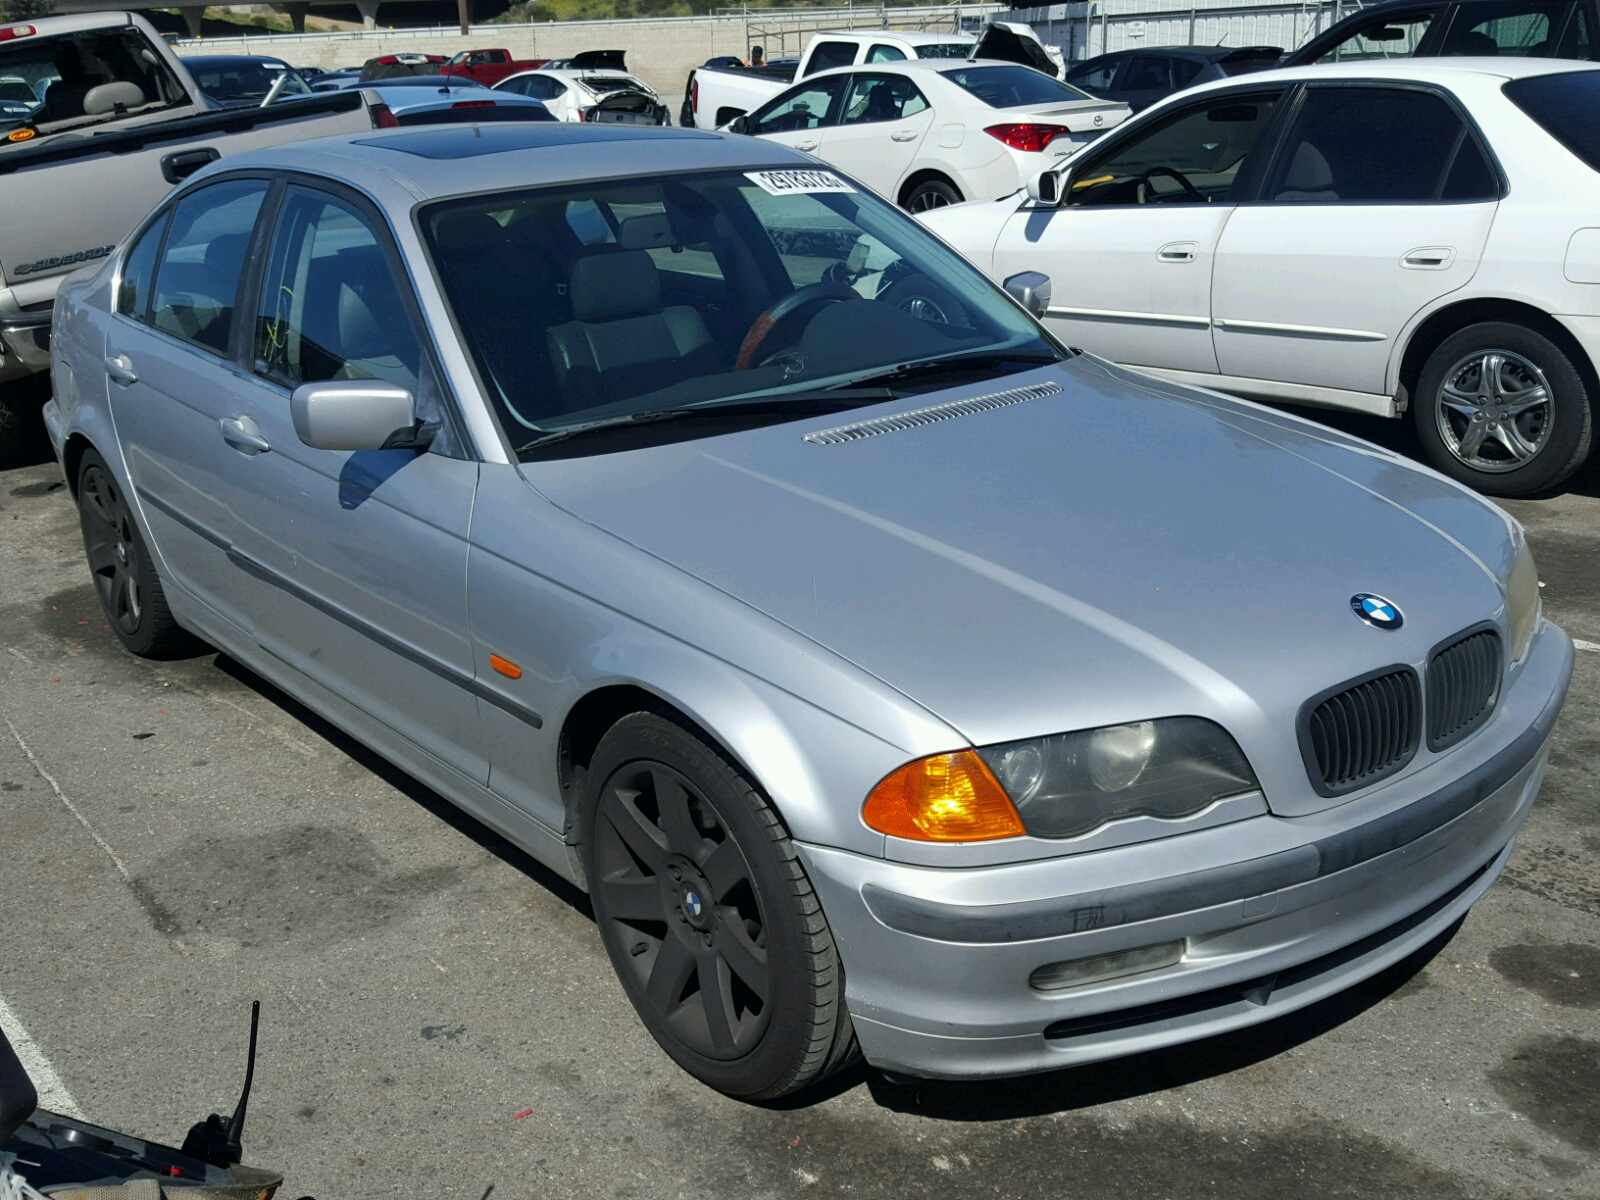 Auto Auction Ended On Vin Wbaam3341yfp74501 2000 Bmw 323i In Ny Long Island